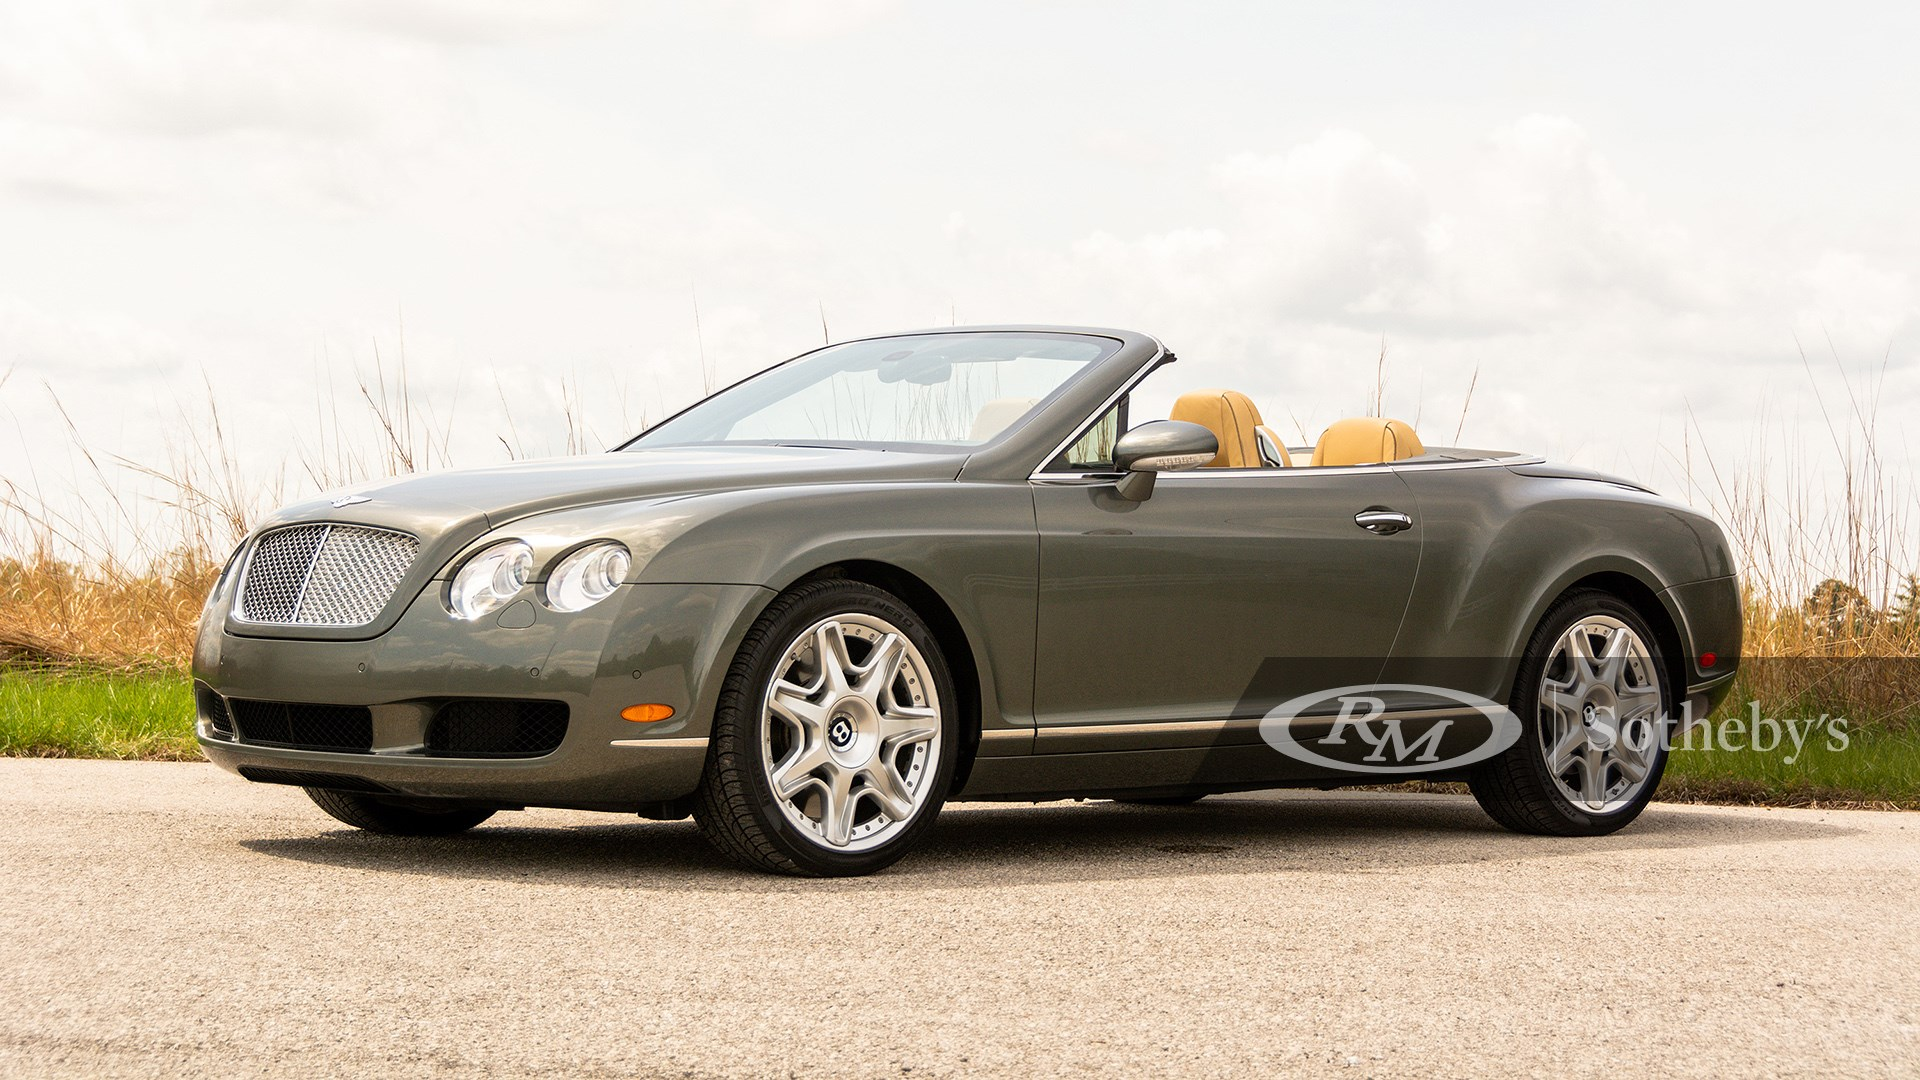 Driving Into Summer, 2009 Bentley Continental GTC